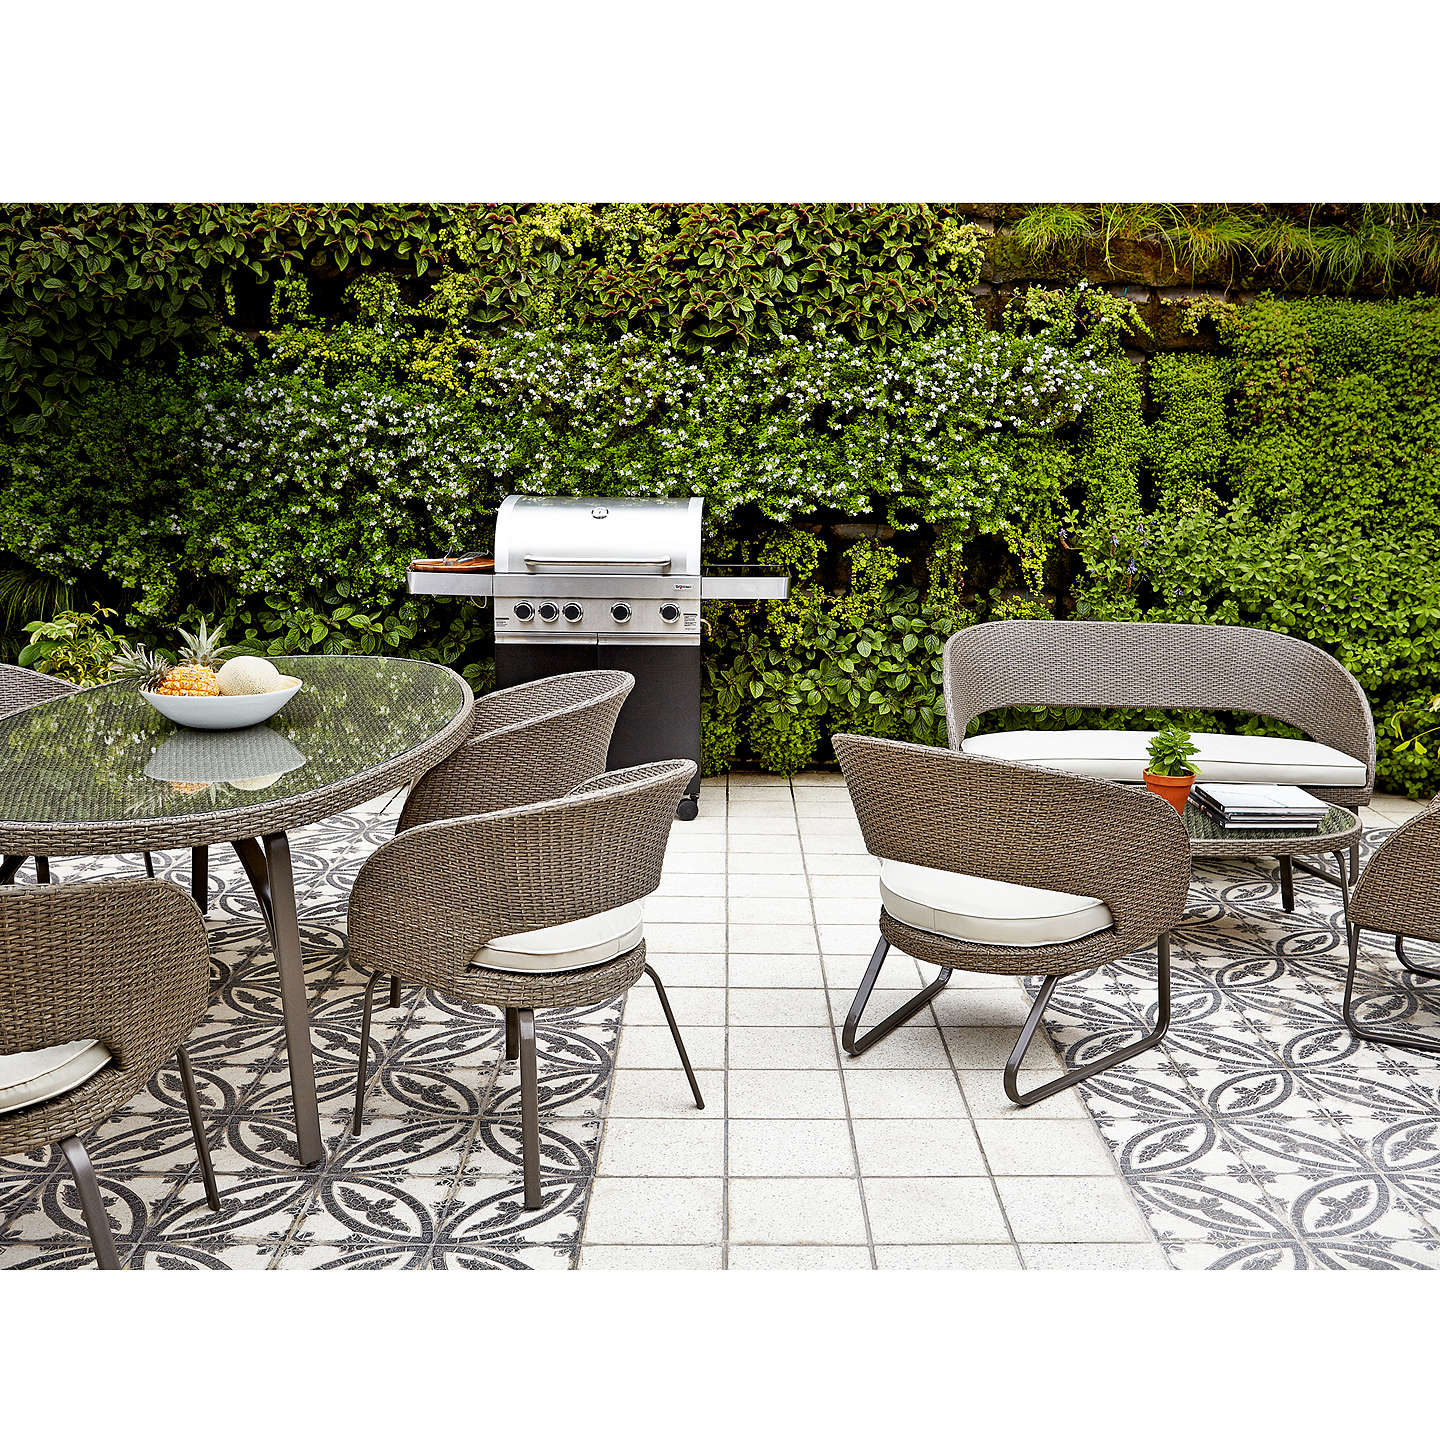 BuyJohn Lewis Corsica 6 Seater Round Garden Dining Table Online at johnlewis.com